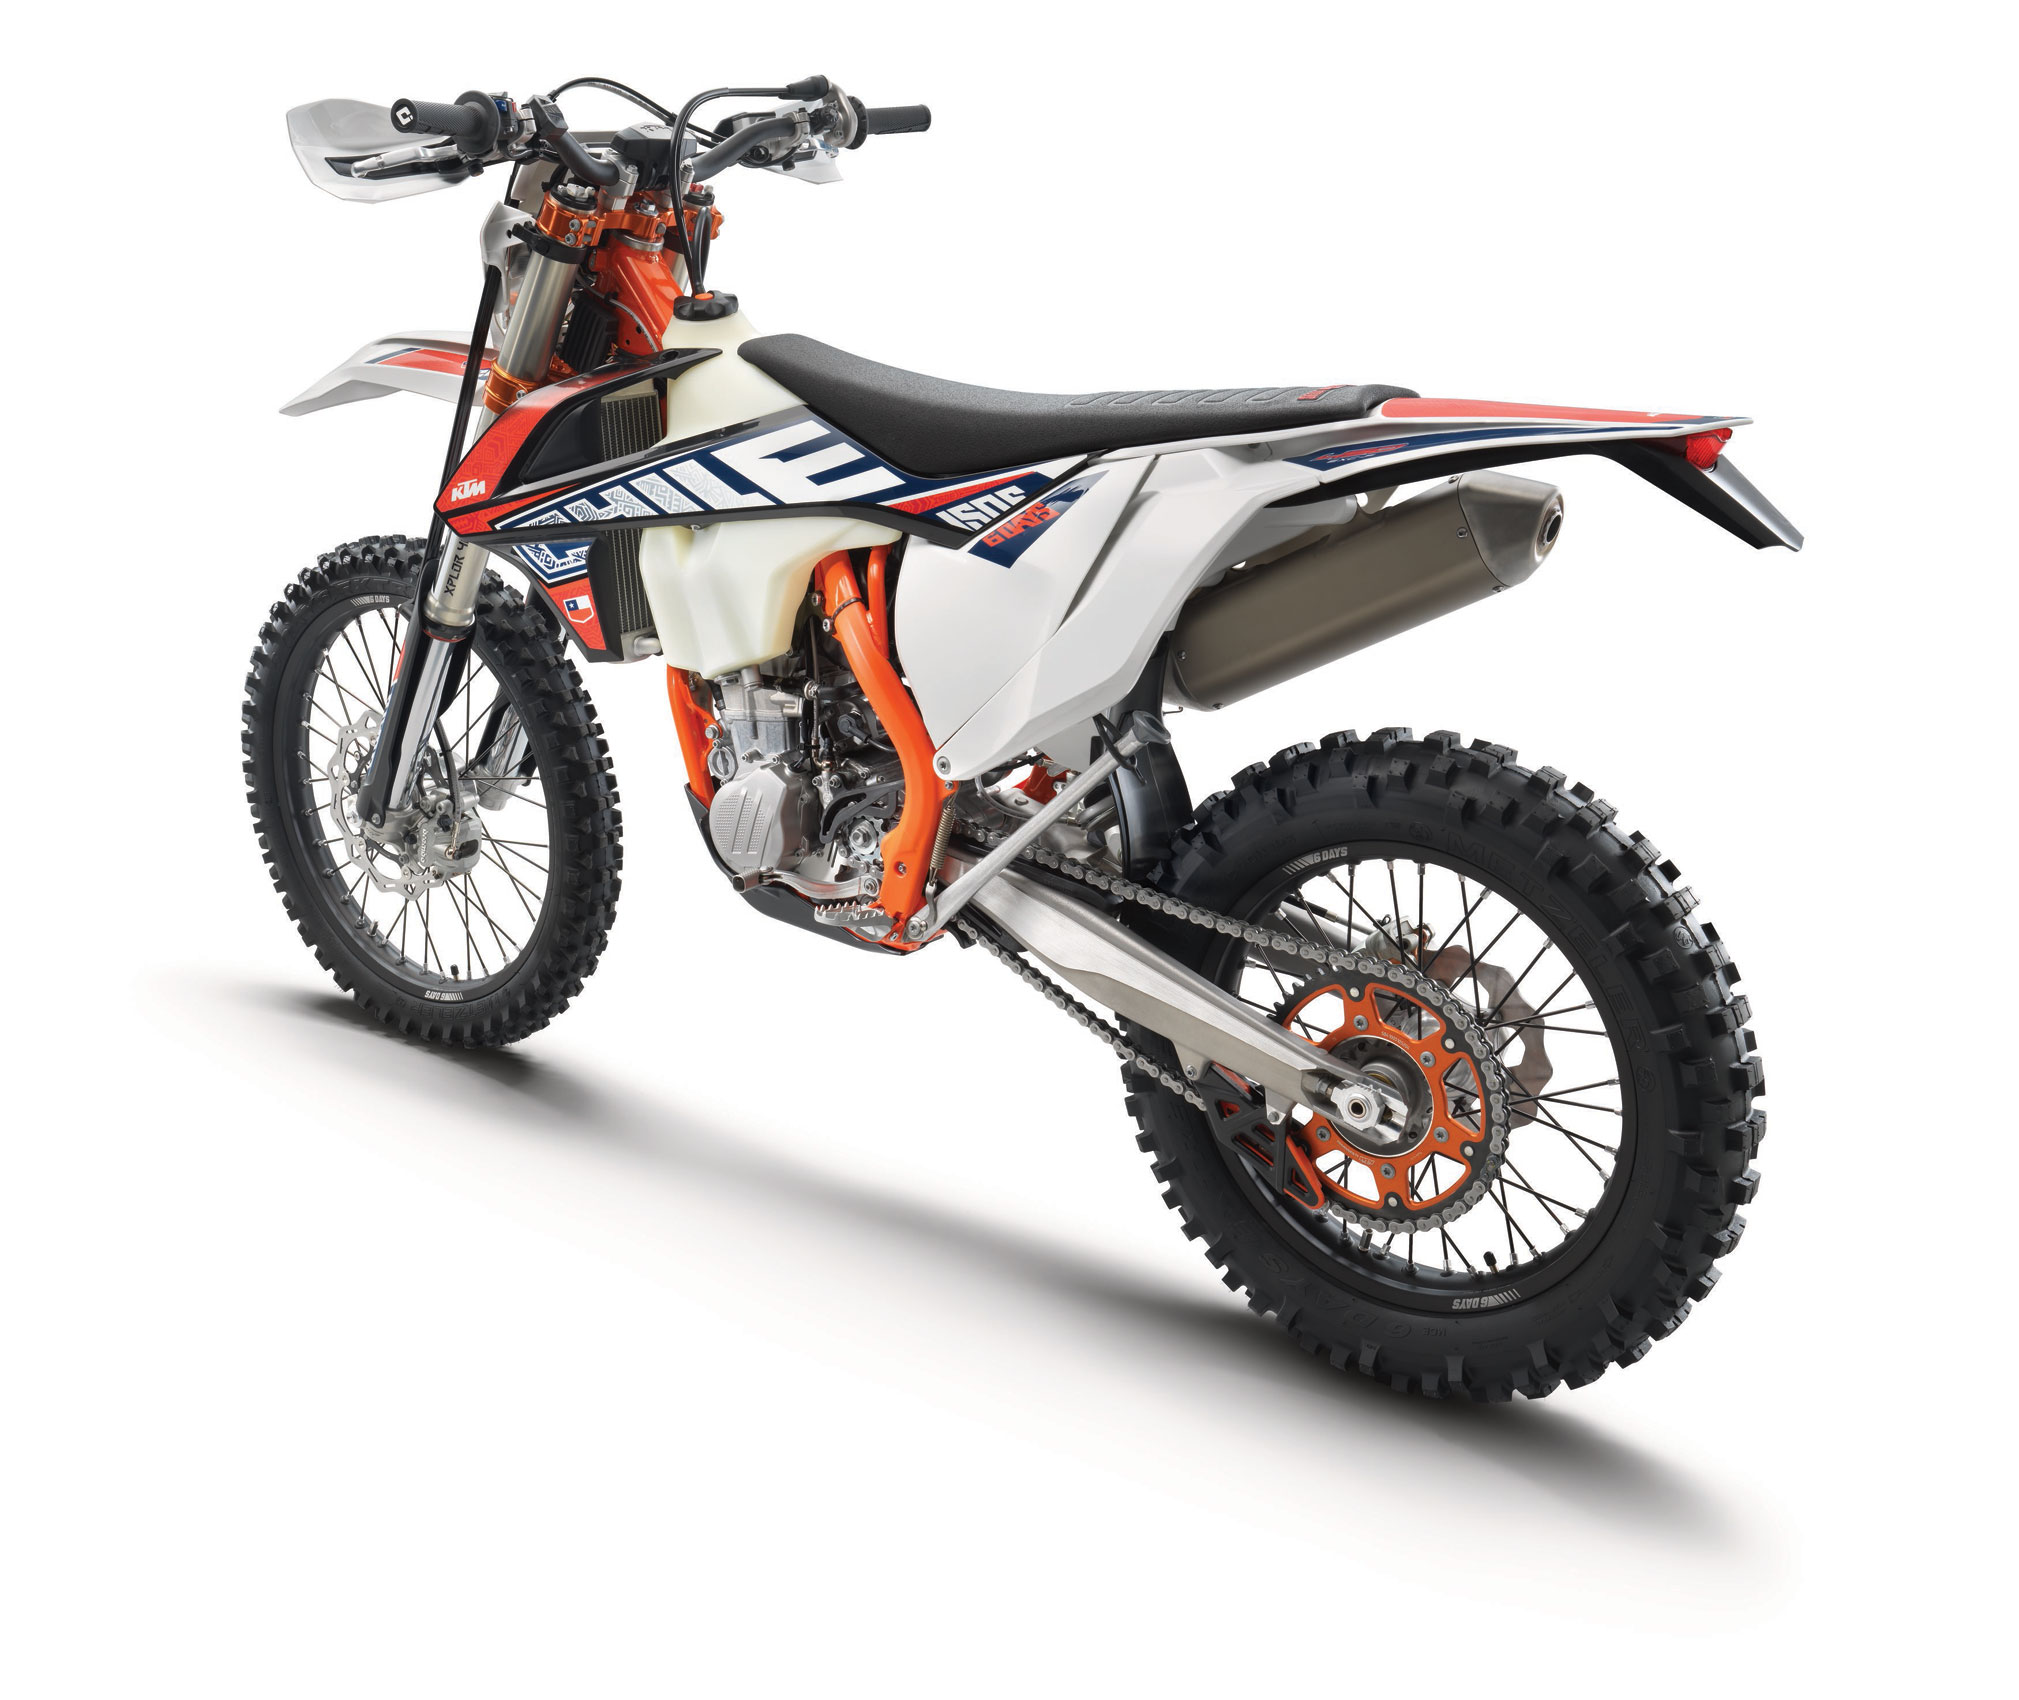 2019 KTM 450 EXC-F Six Days Guide • Total Motorcycle